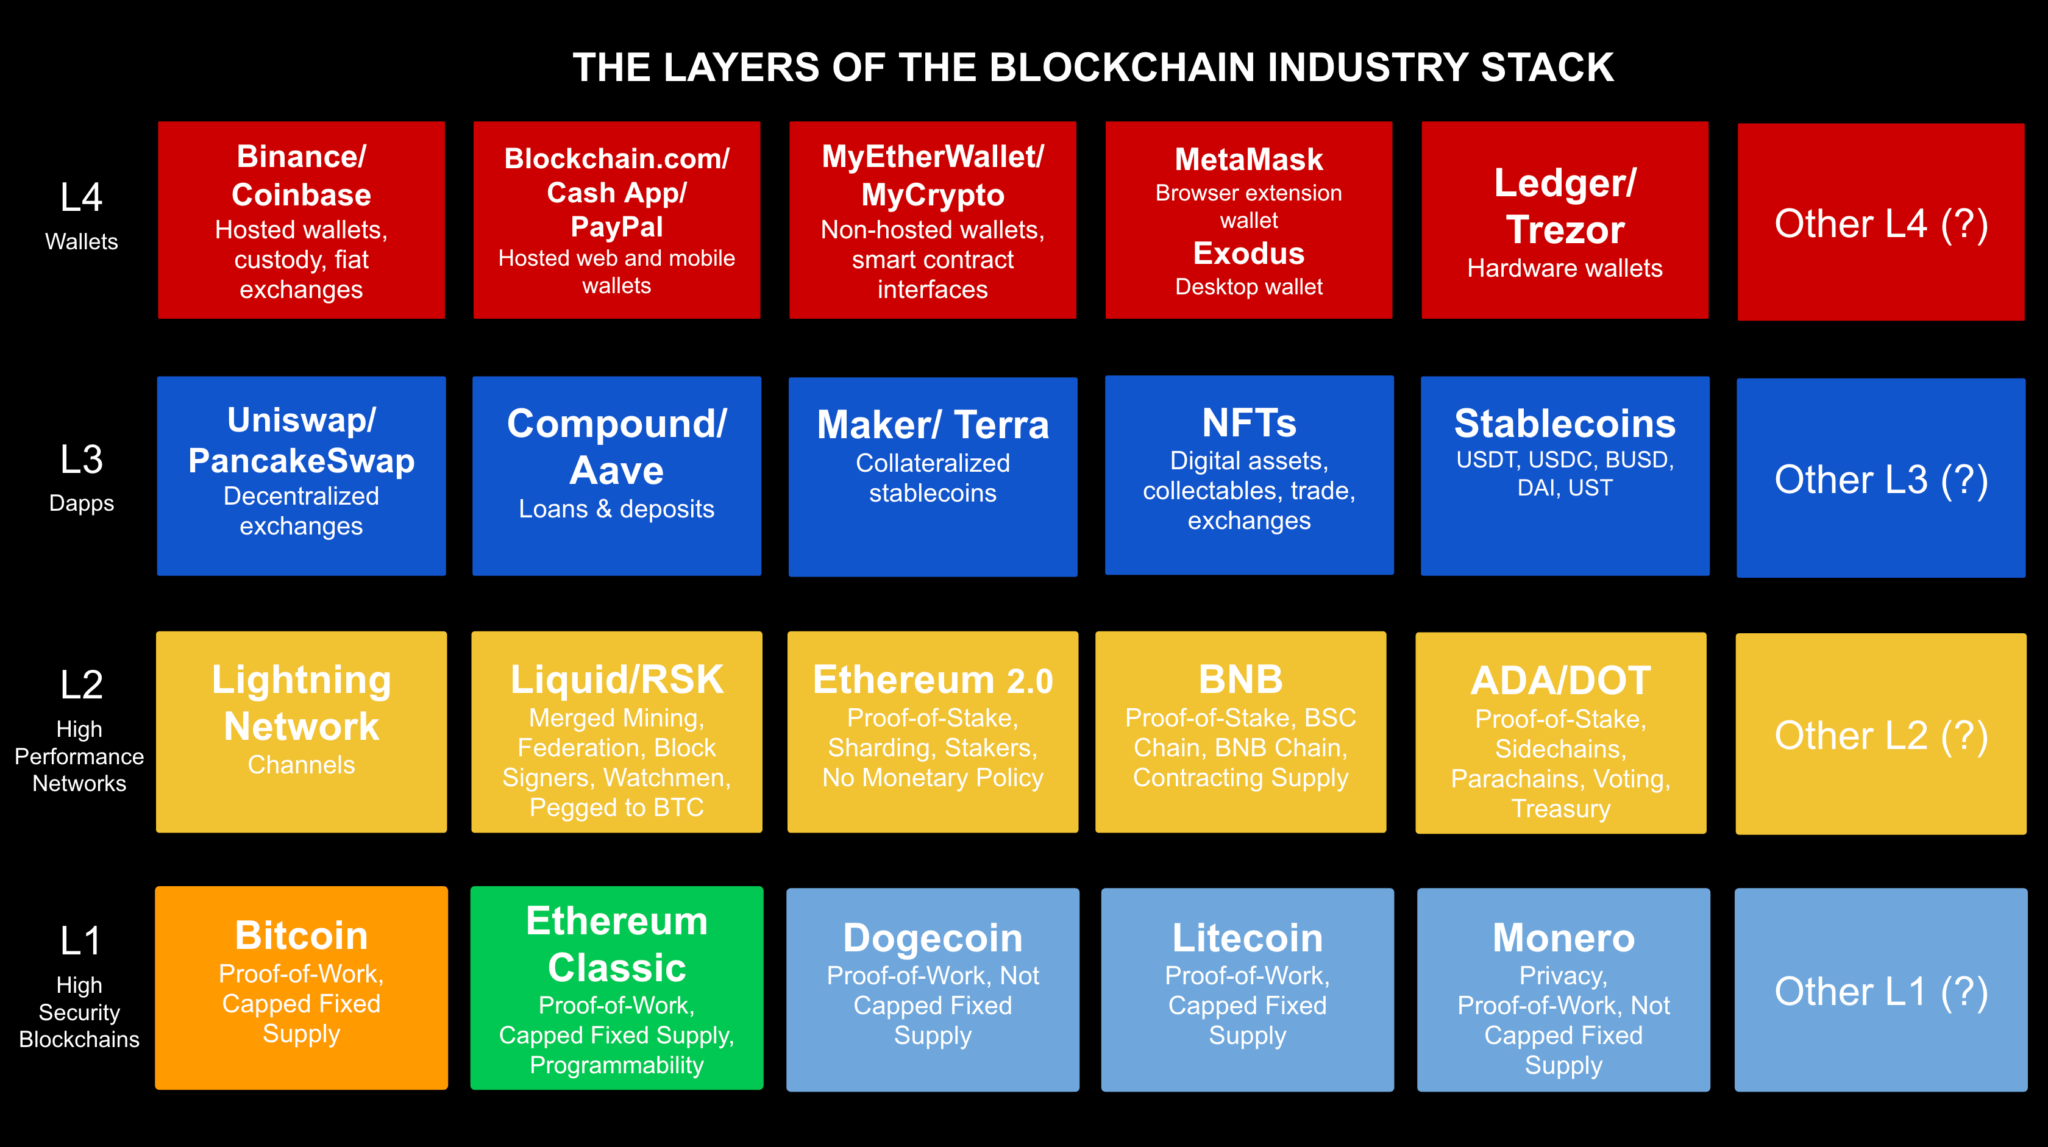 The layers of the blockchain industry stack.